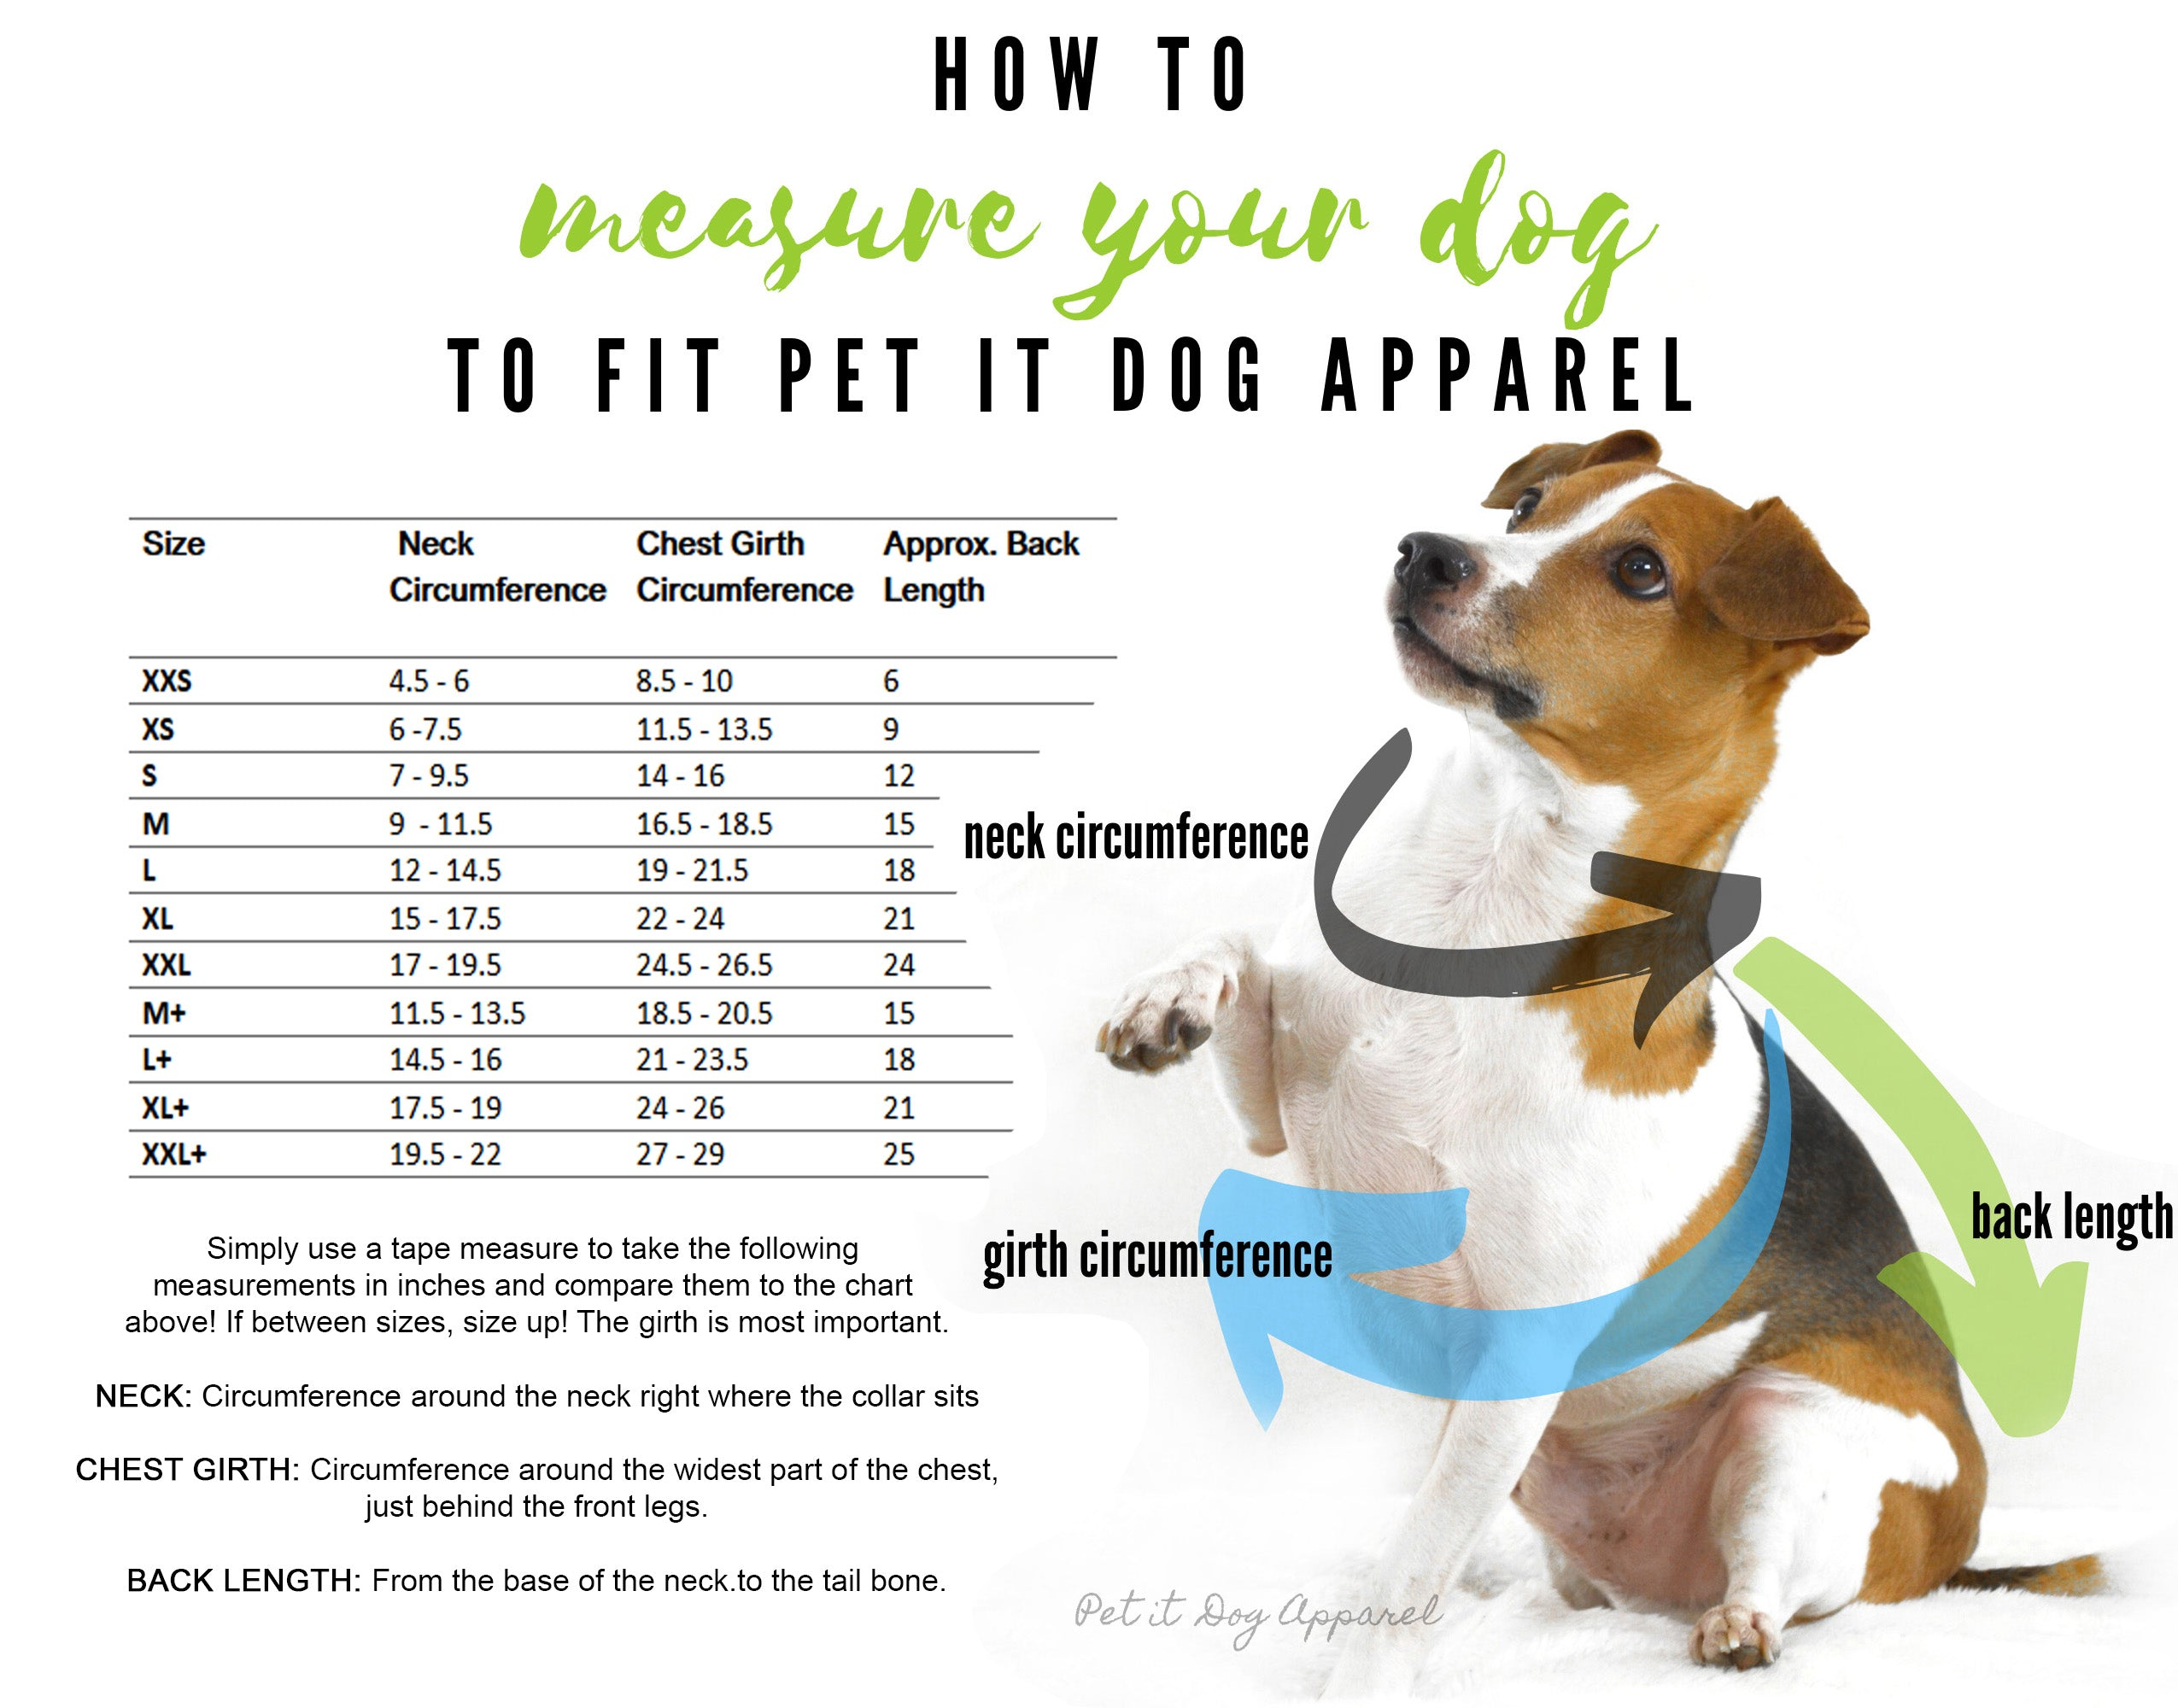 Pet it Dog Apparel Size Chart